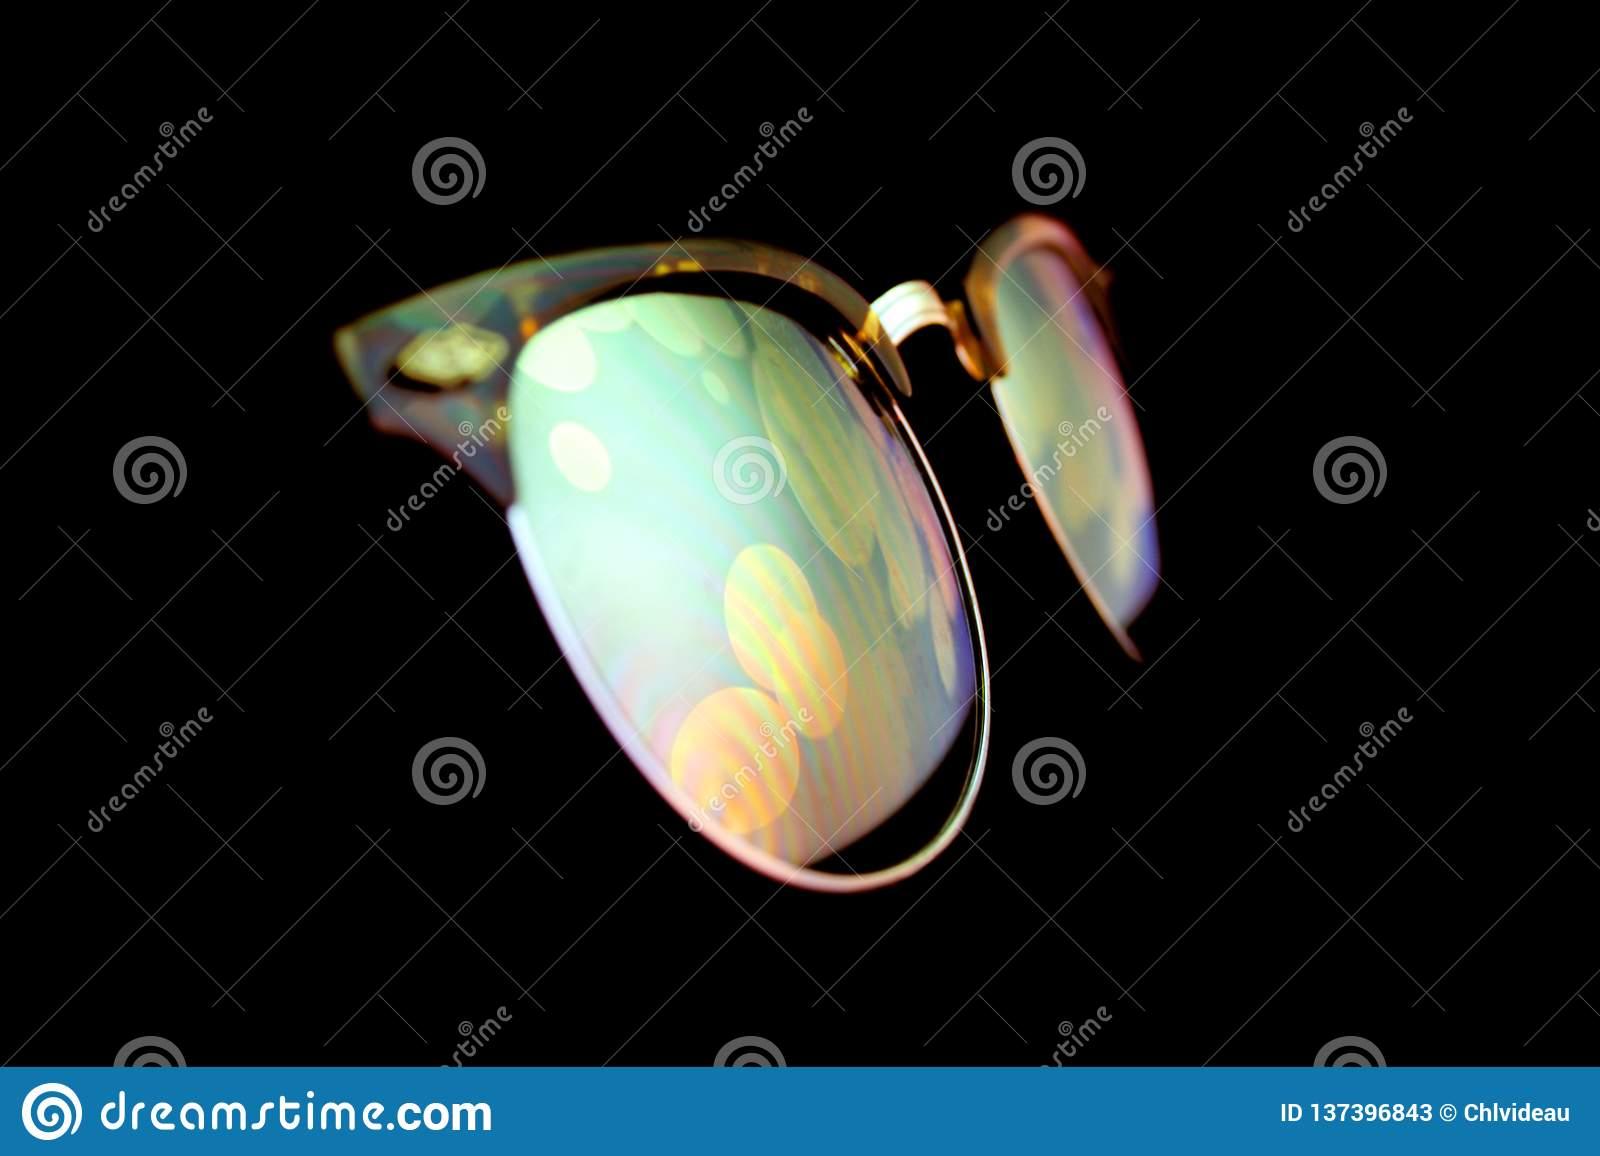 Holographic screen reflection on sunglasses in the night